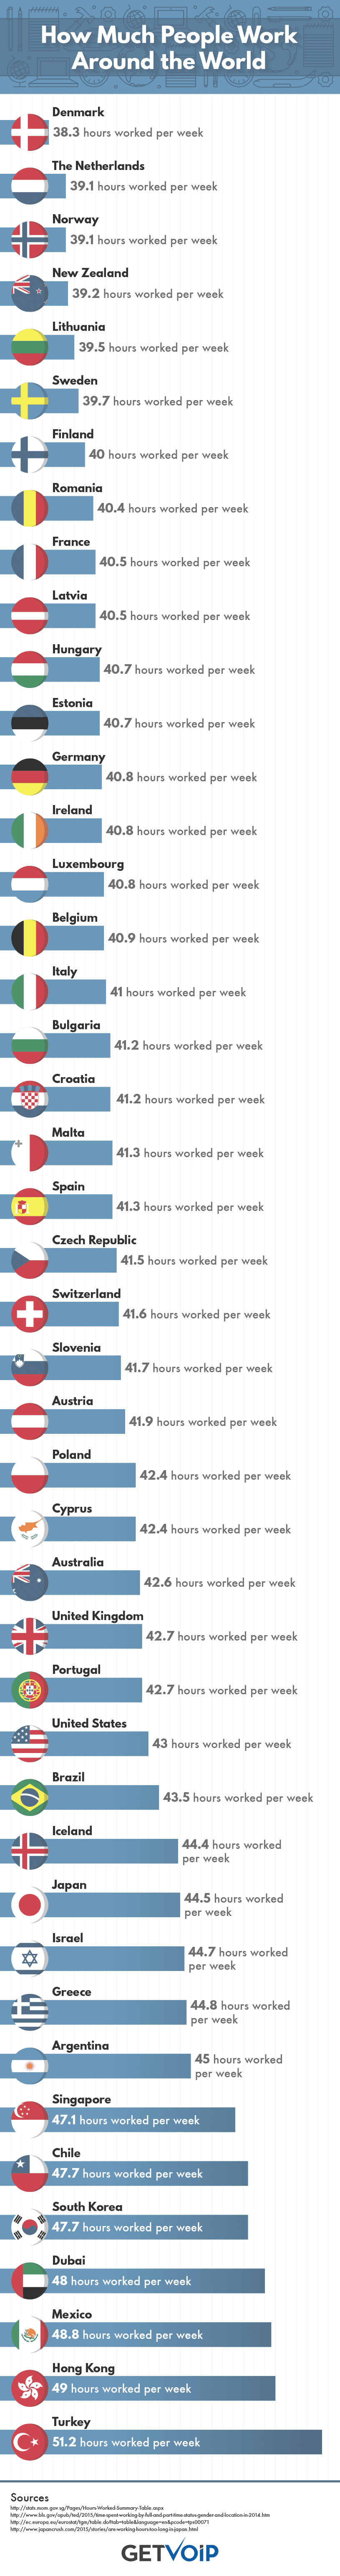 How Much People Work Around the World